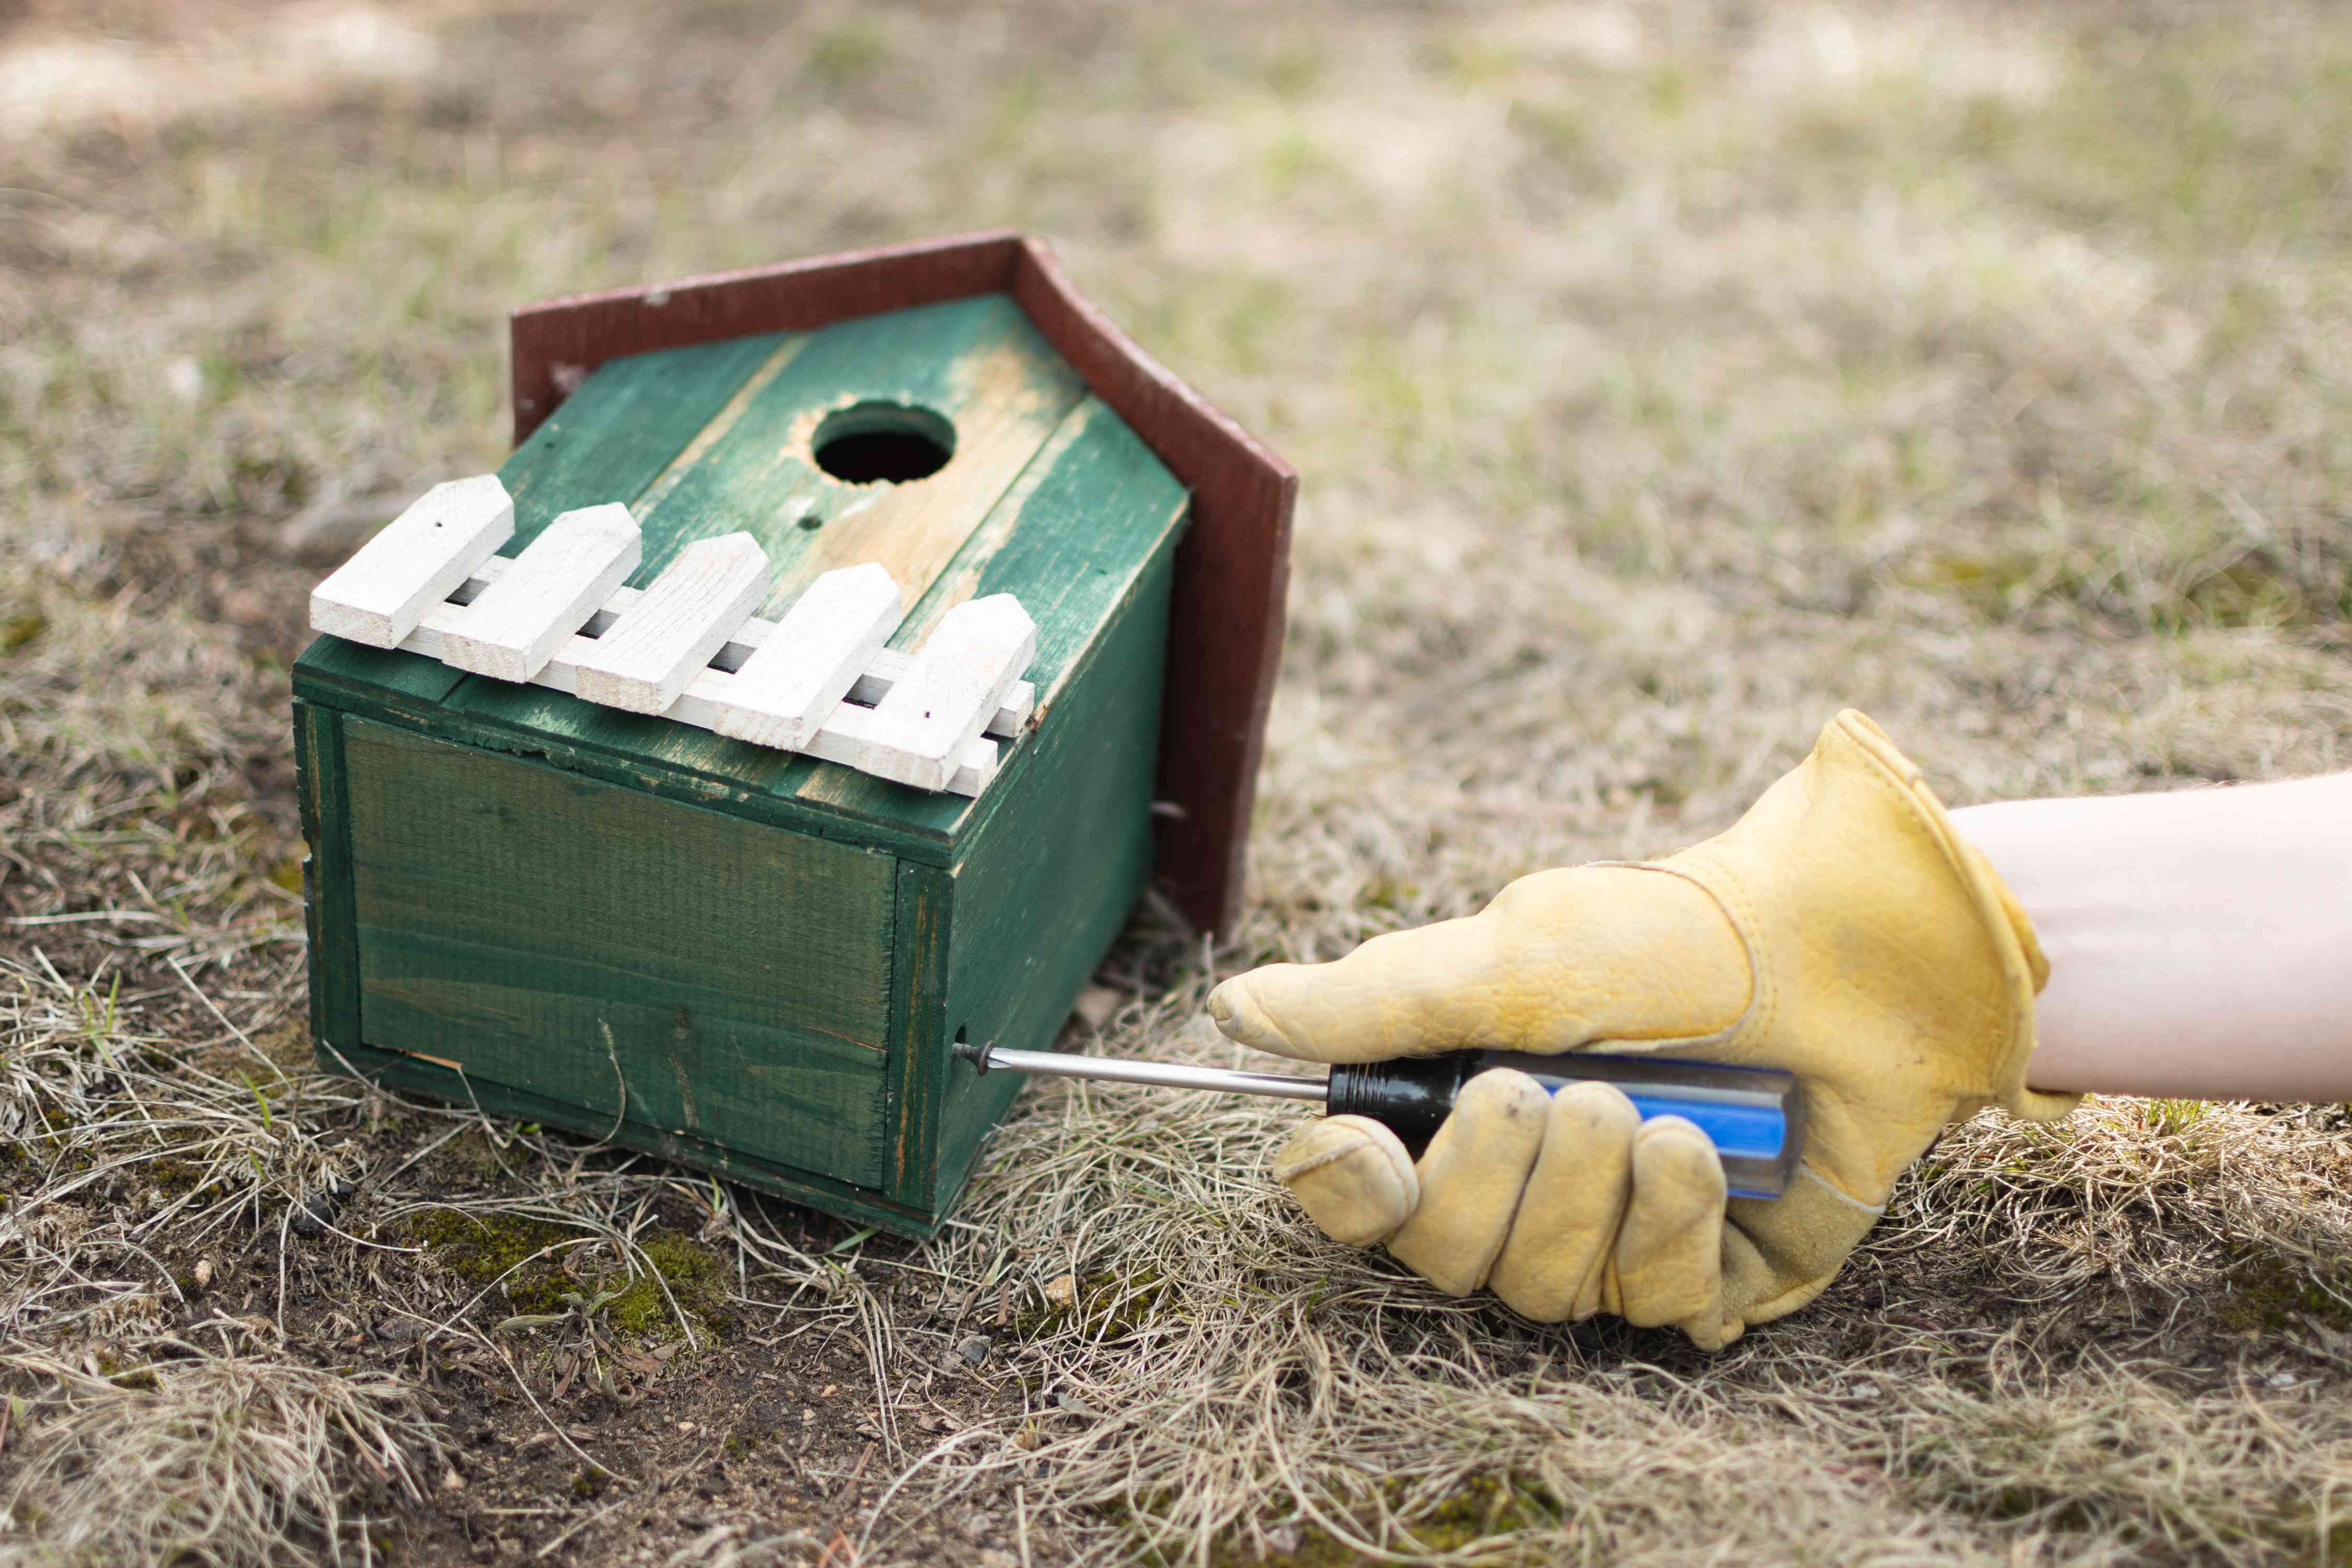 Wooden green birdhouse laying on ground and being unscrewed from the bottom